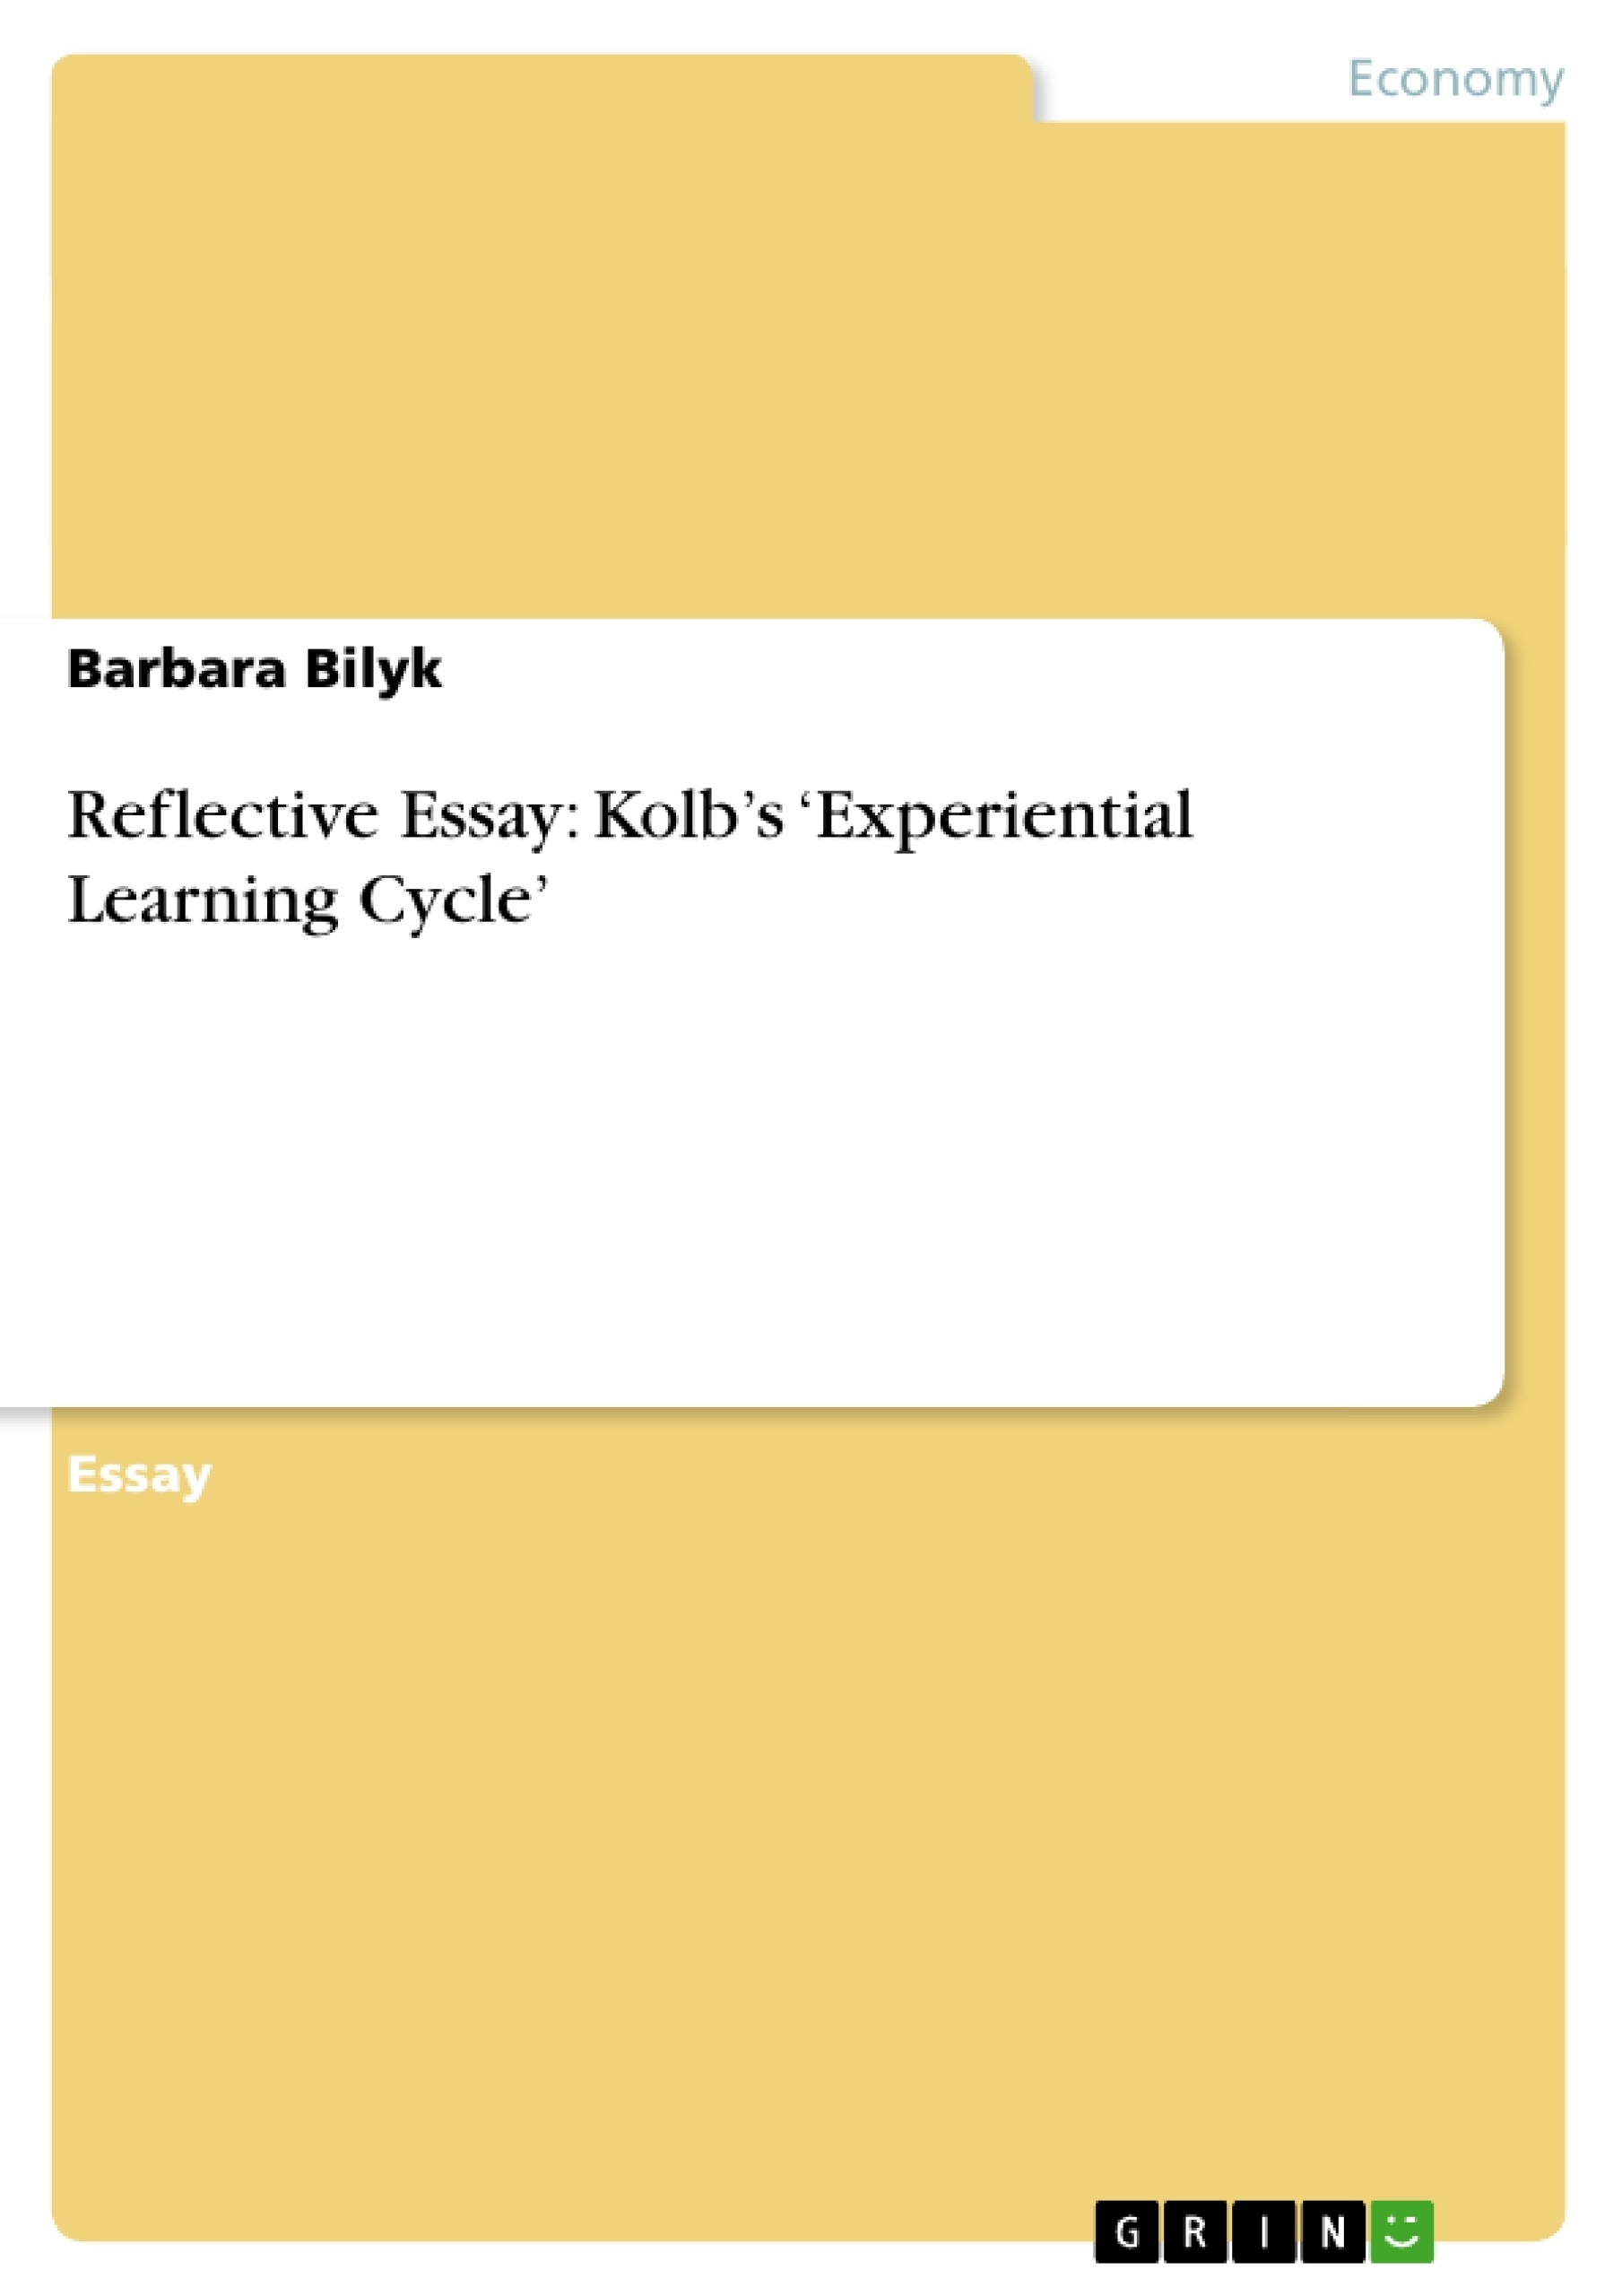 essay about learning reflective essay kolb s experiential learning  reflective essay kolb s experiential learning cycle publish reflective essay kolb s experiential learning cycle publish